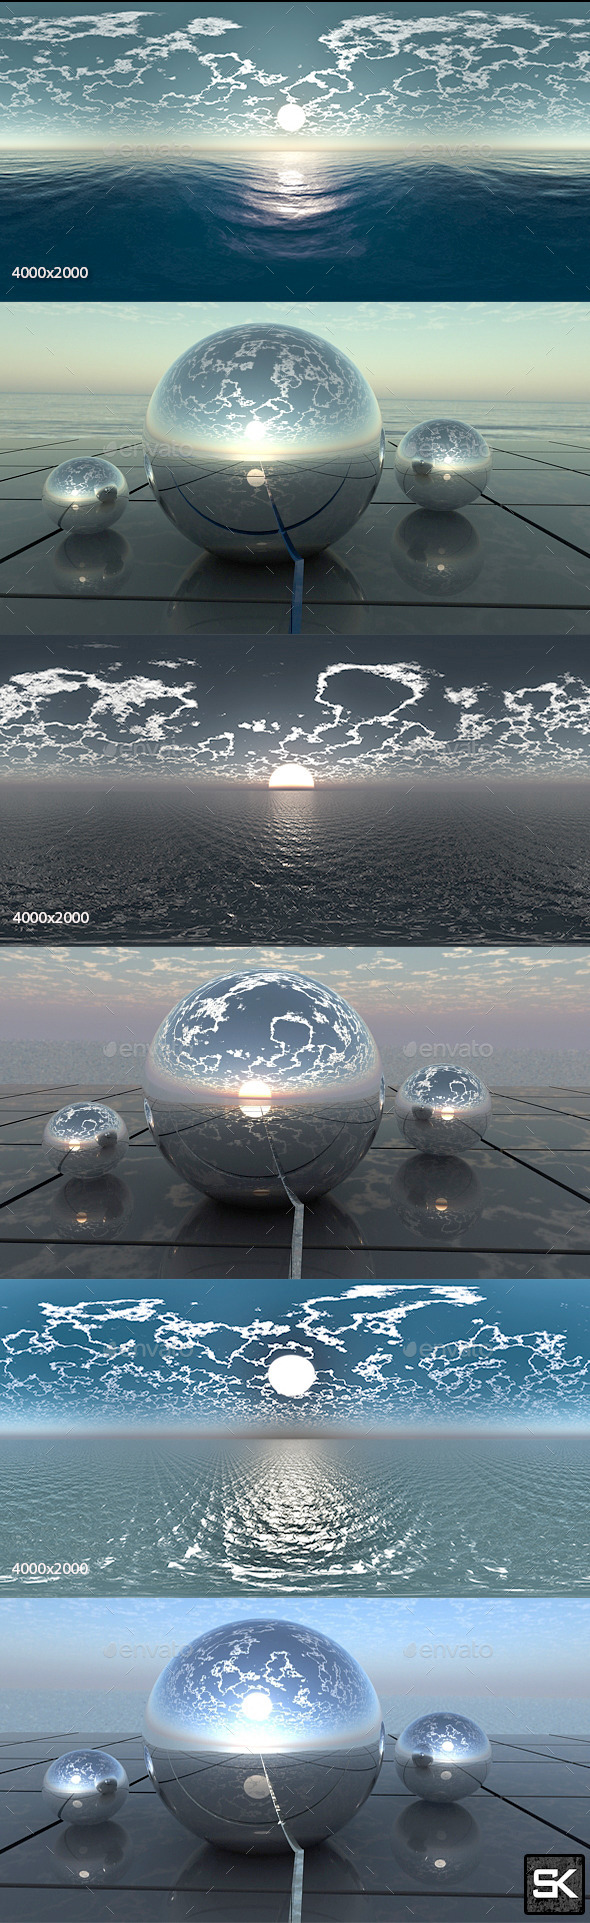 HDRI Pack Sea